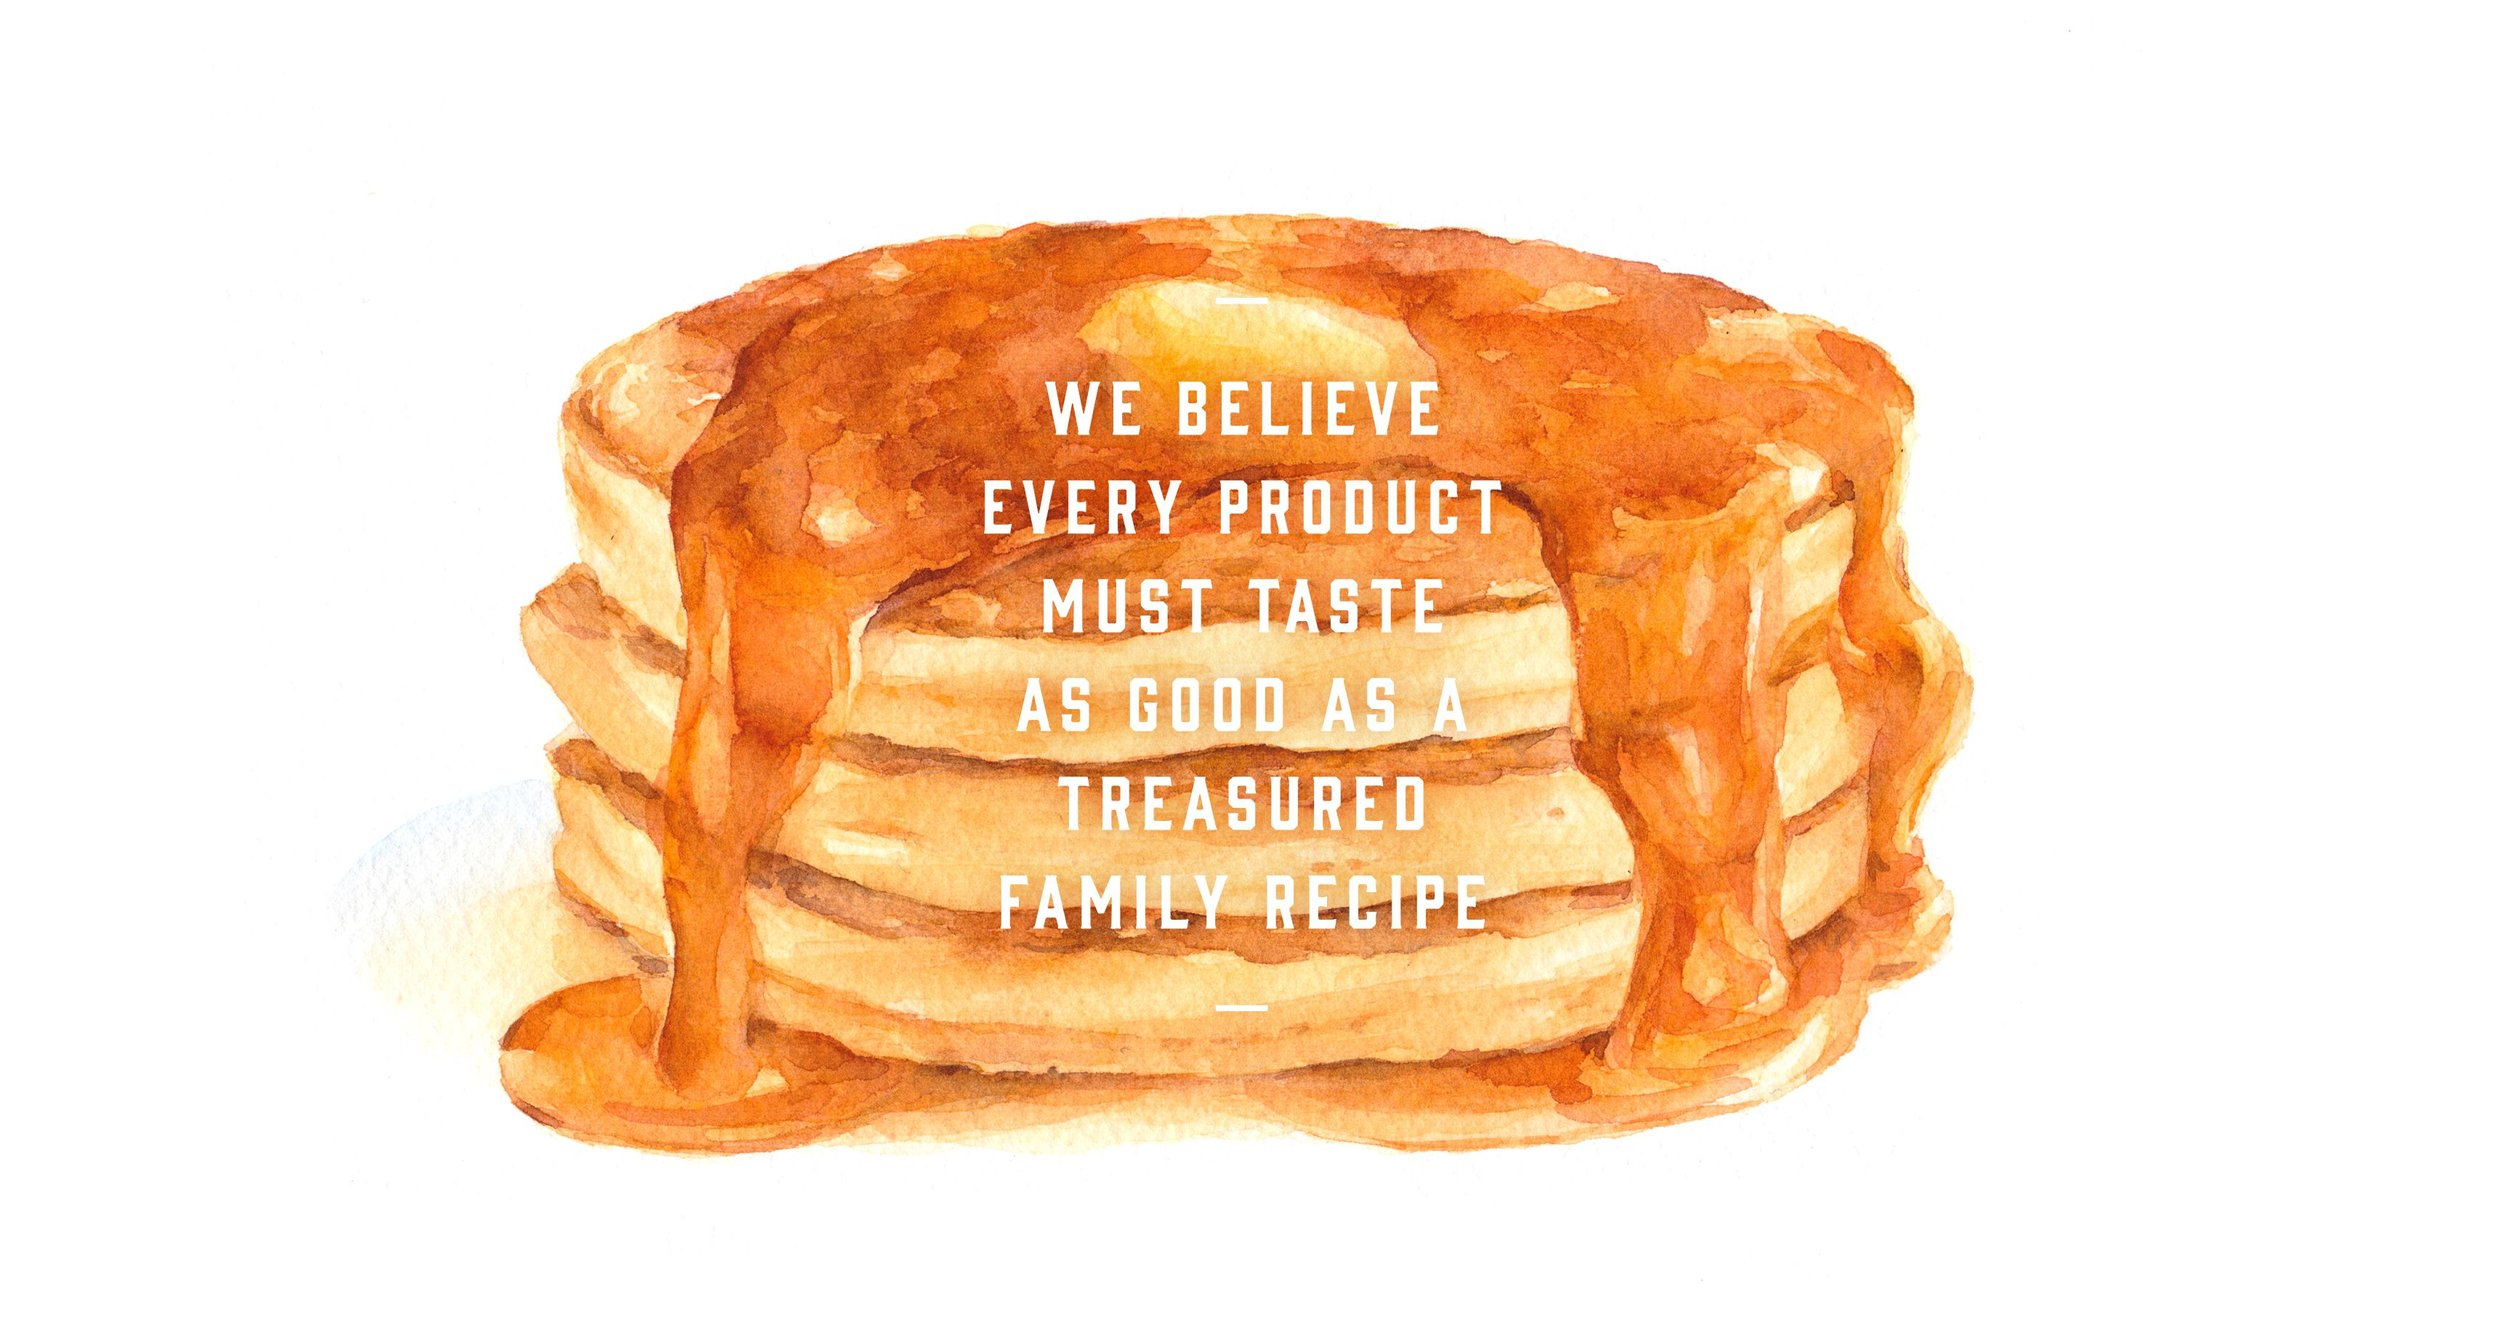 We Believe quote and pancake stack